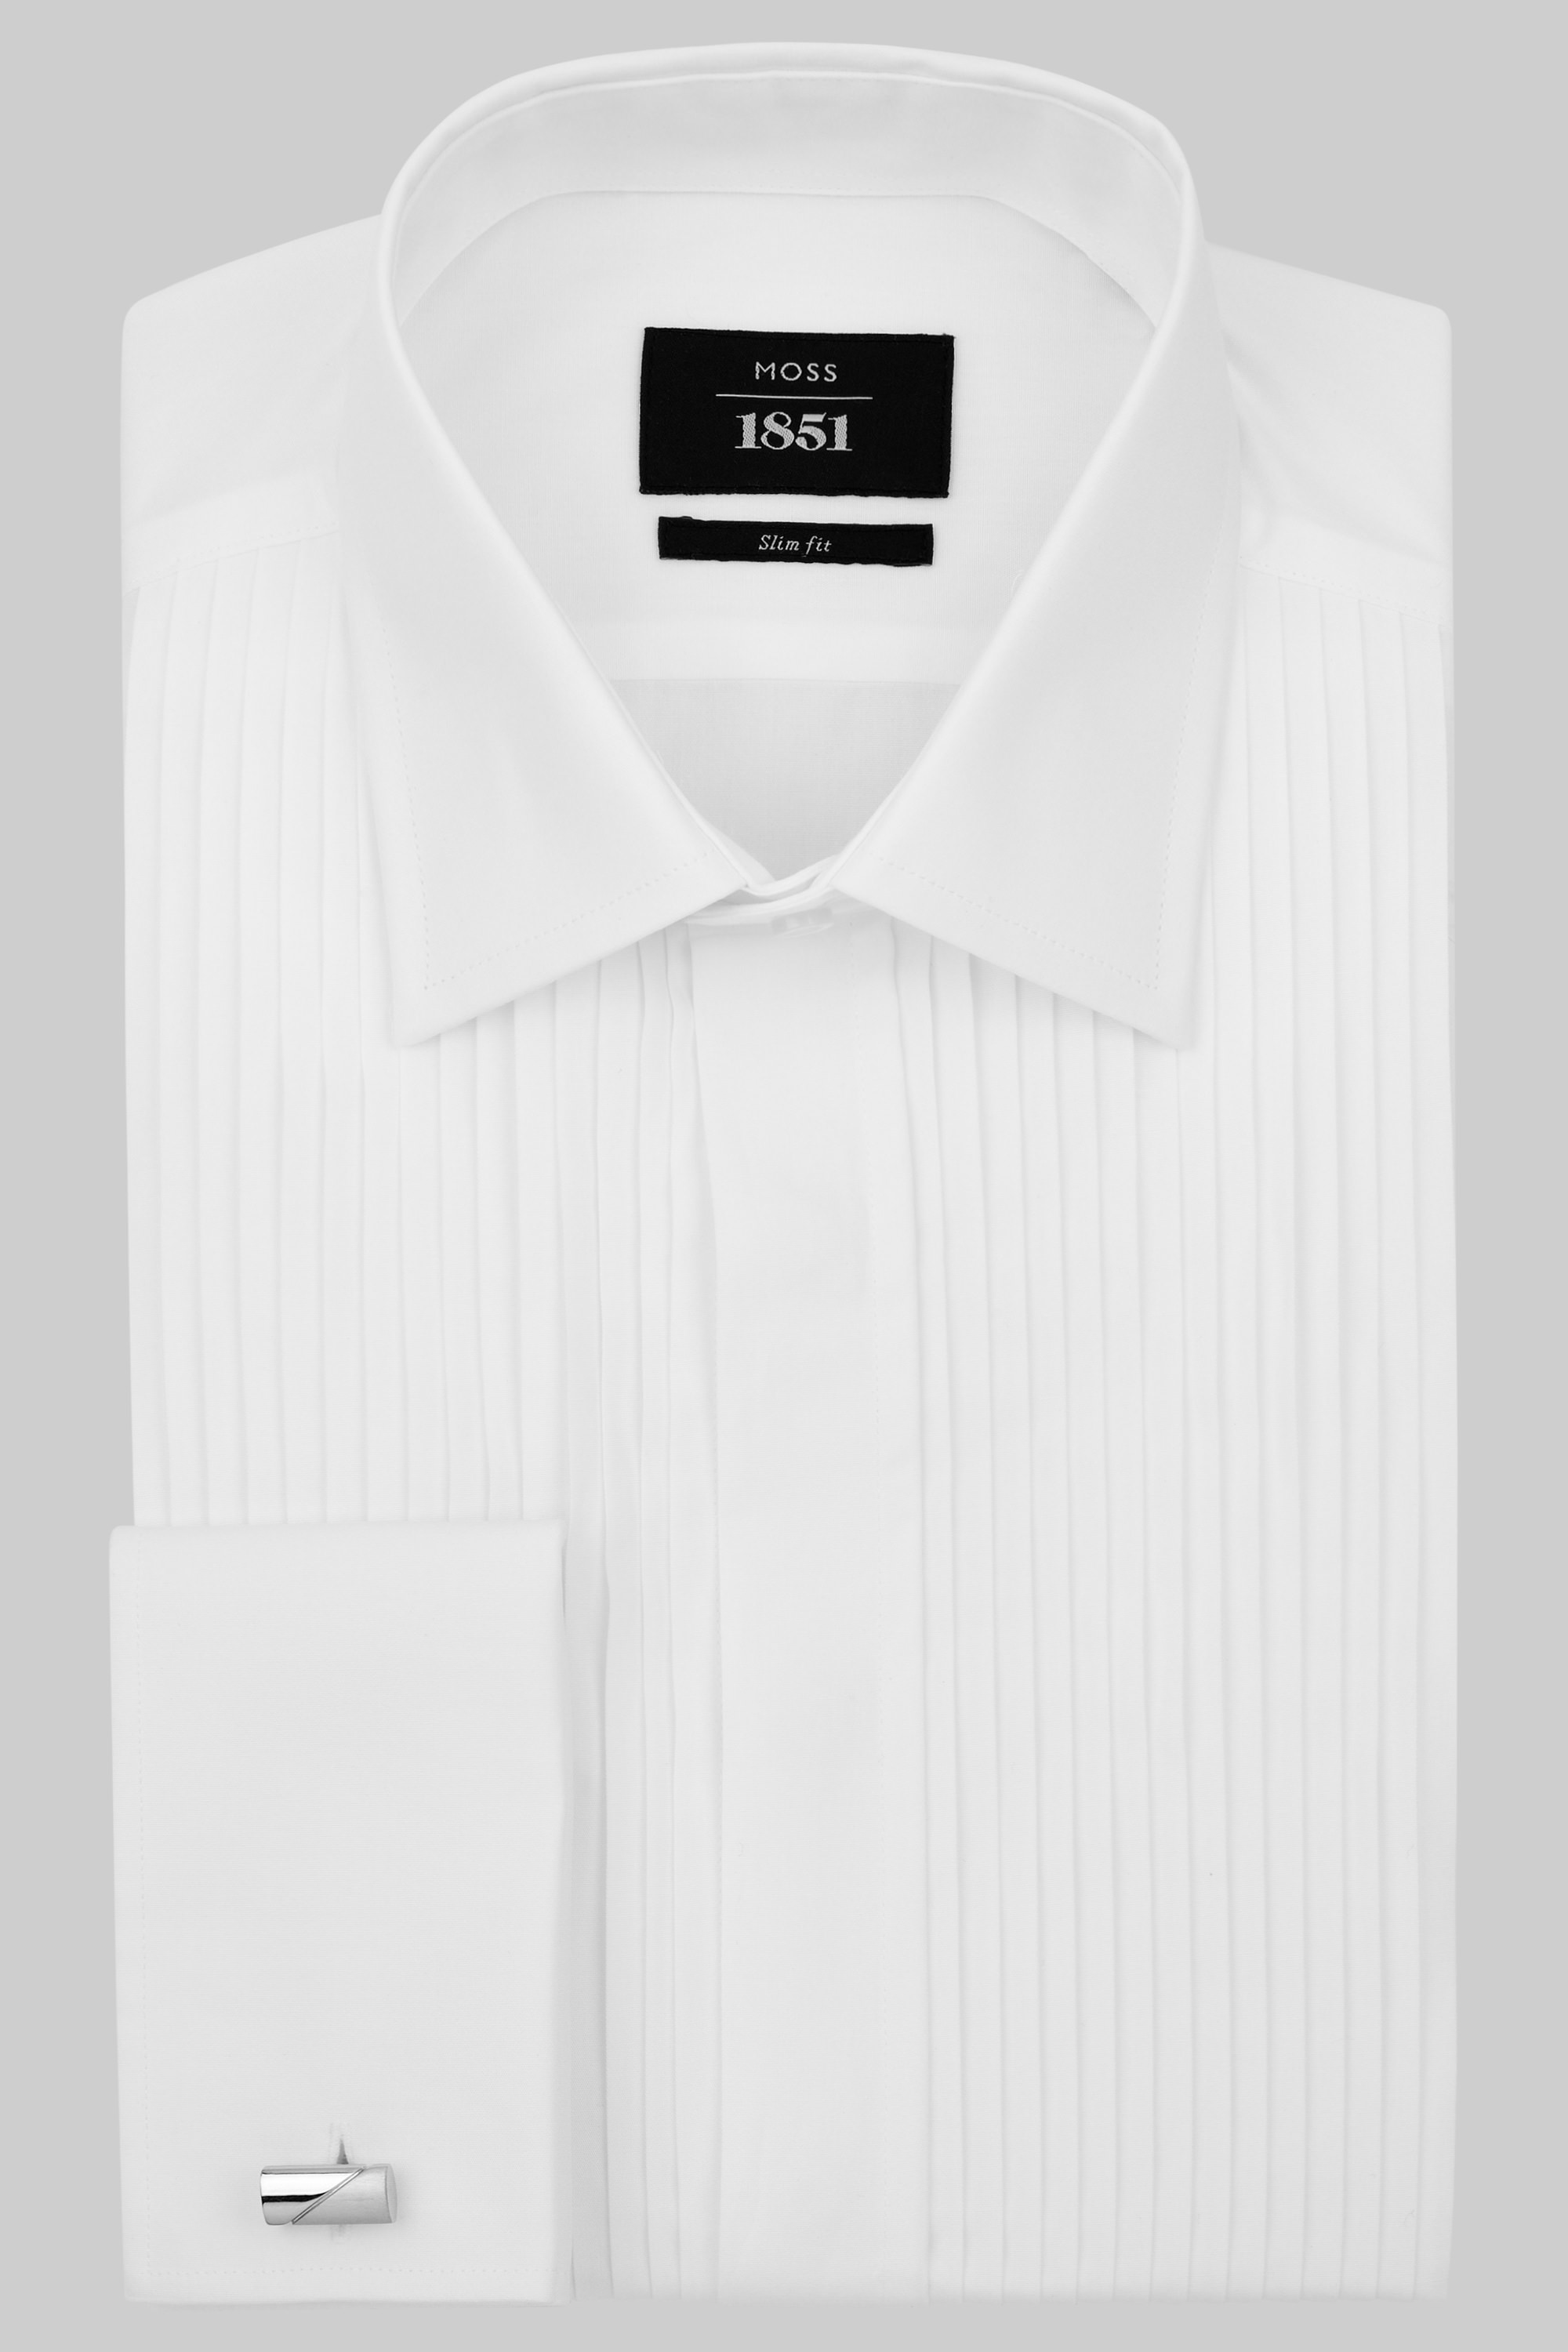 cost charm new lifestyle reasonable price Moss 1851 Slim Fit Classic Collar Pleated White Dress Shirt